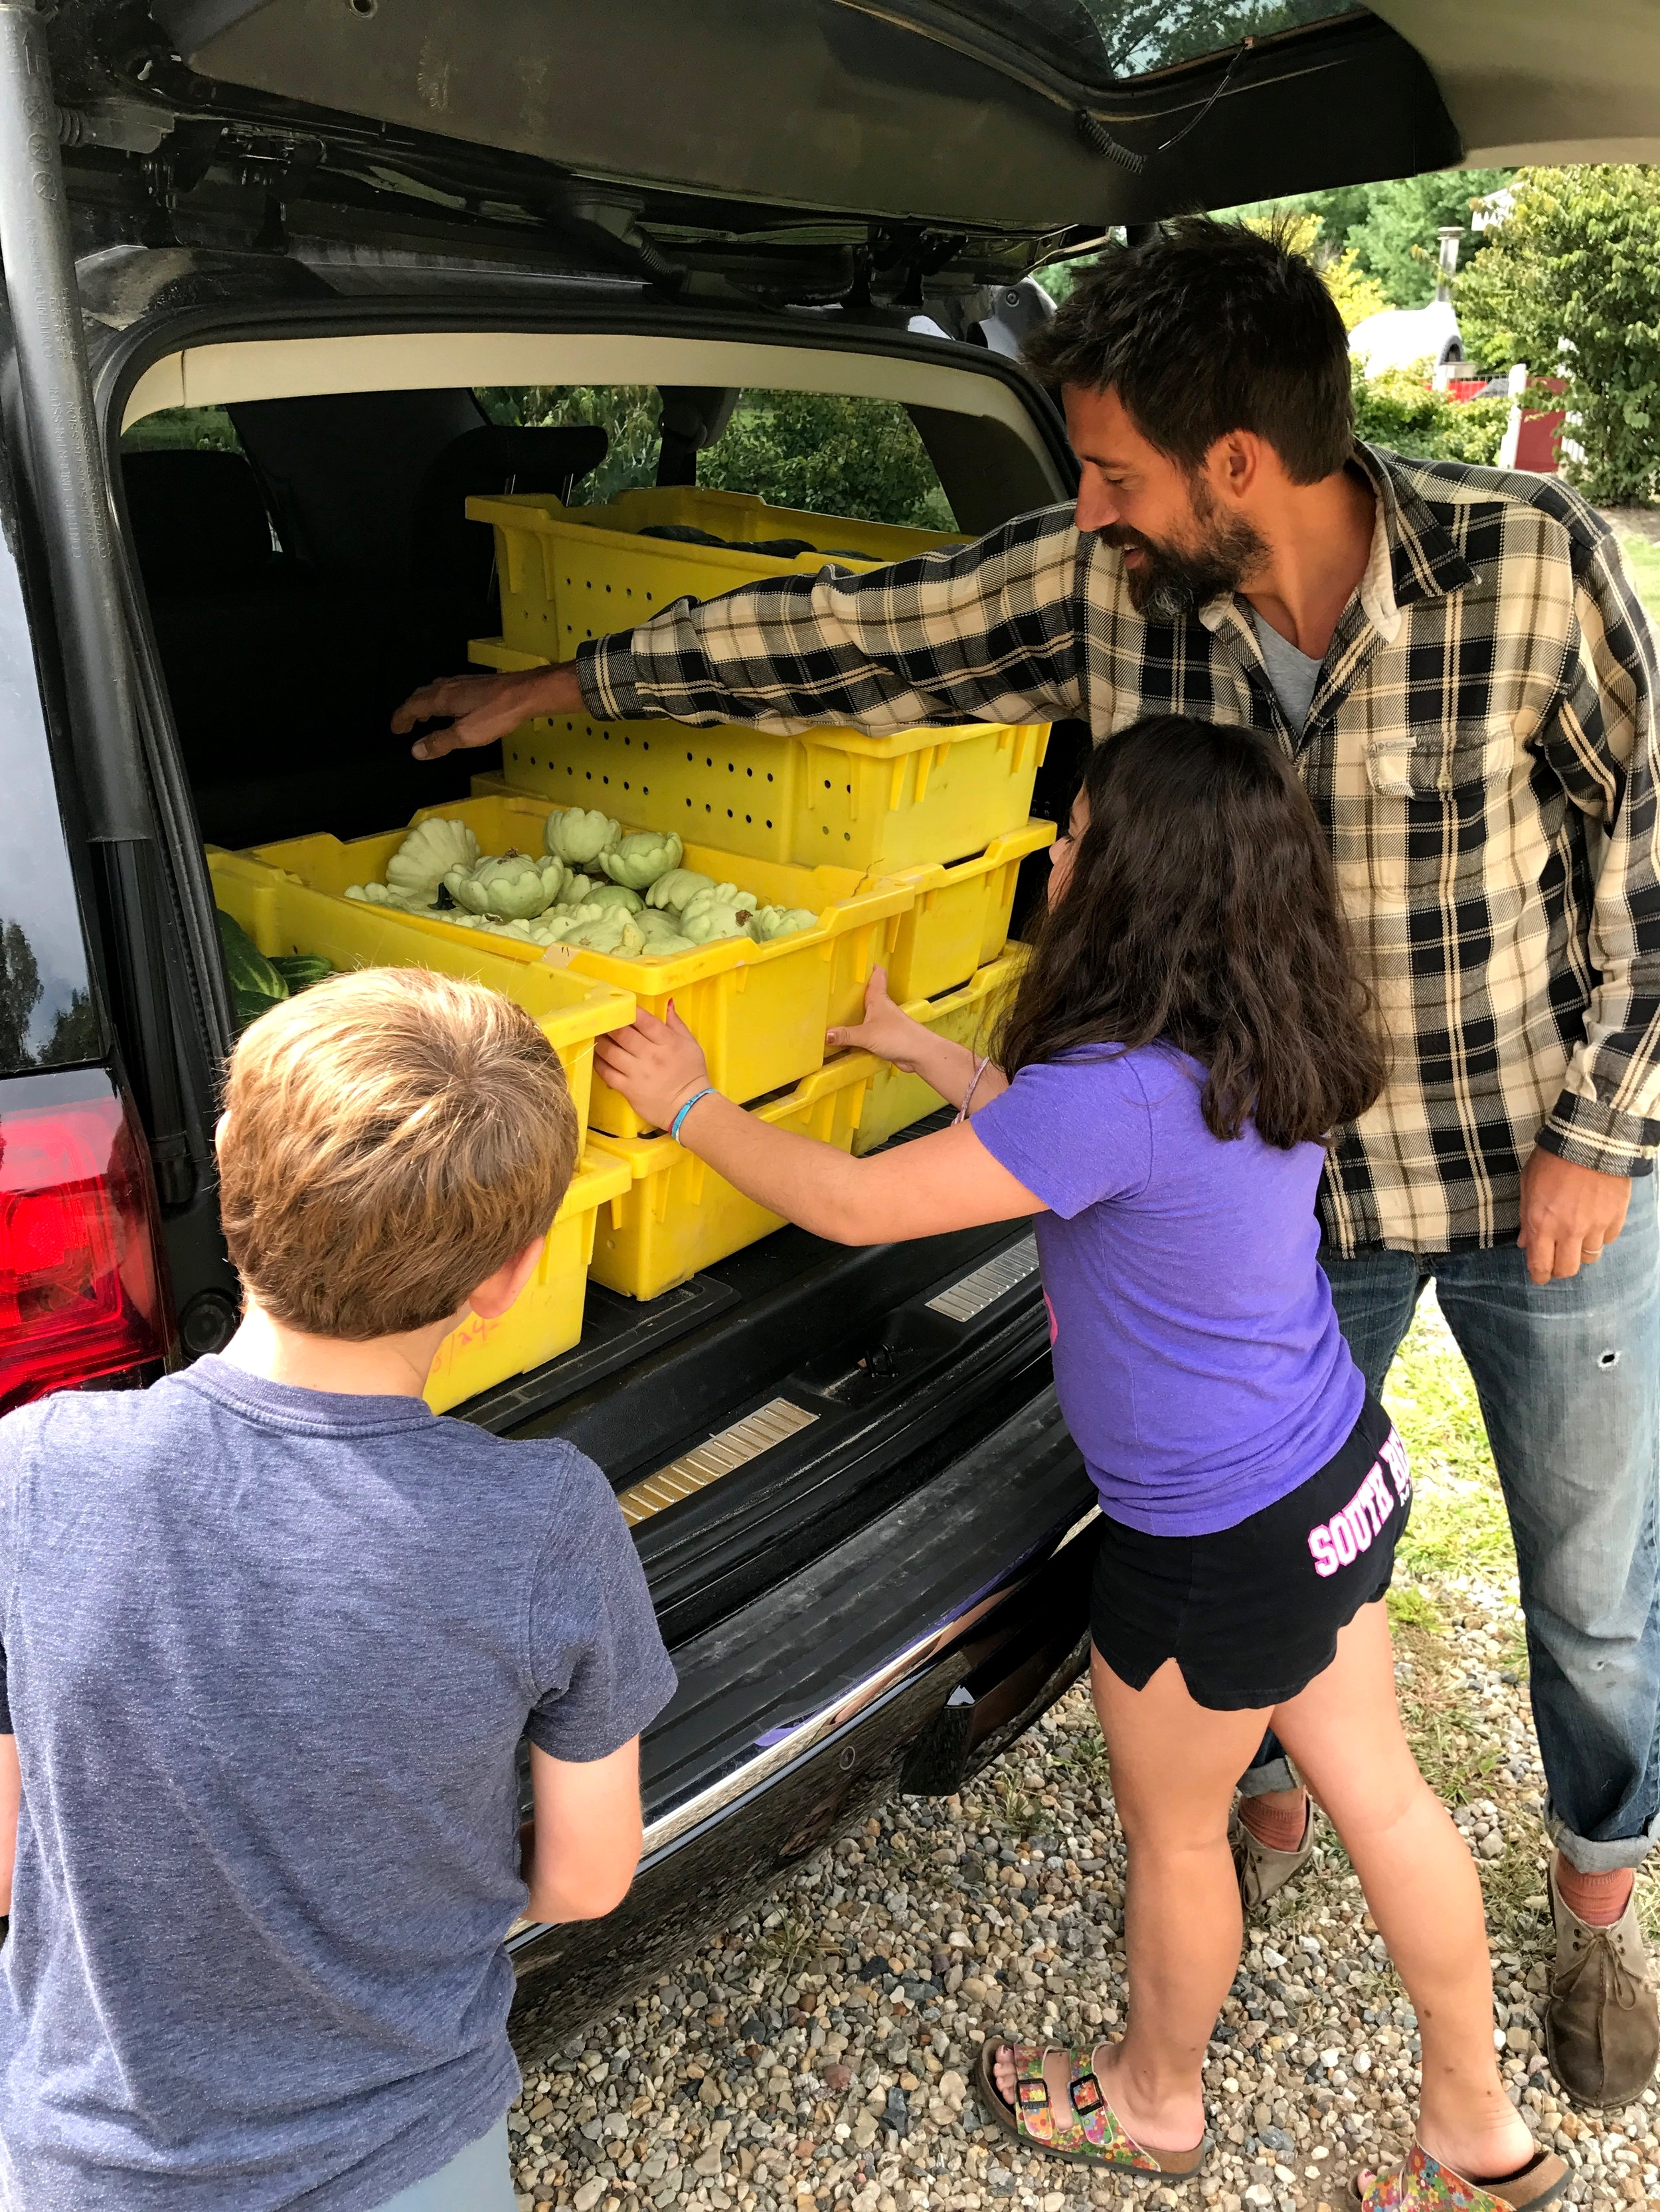 Farmer Billy and the Harris twins loading up a late summer produce donation